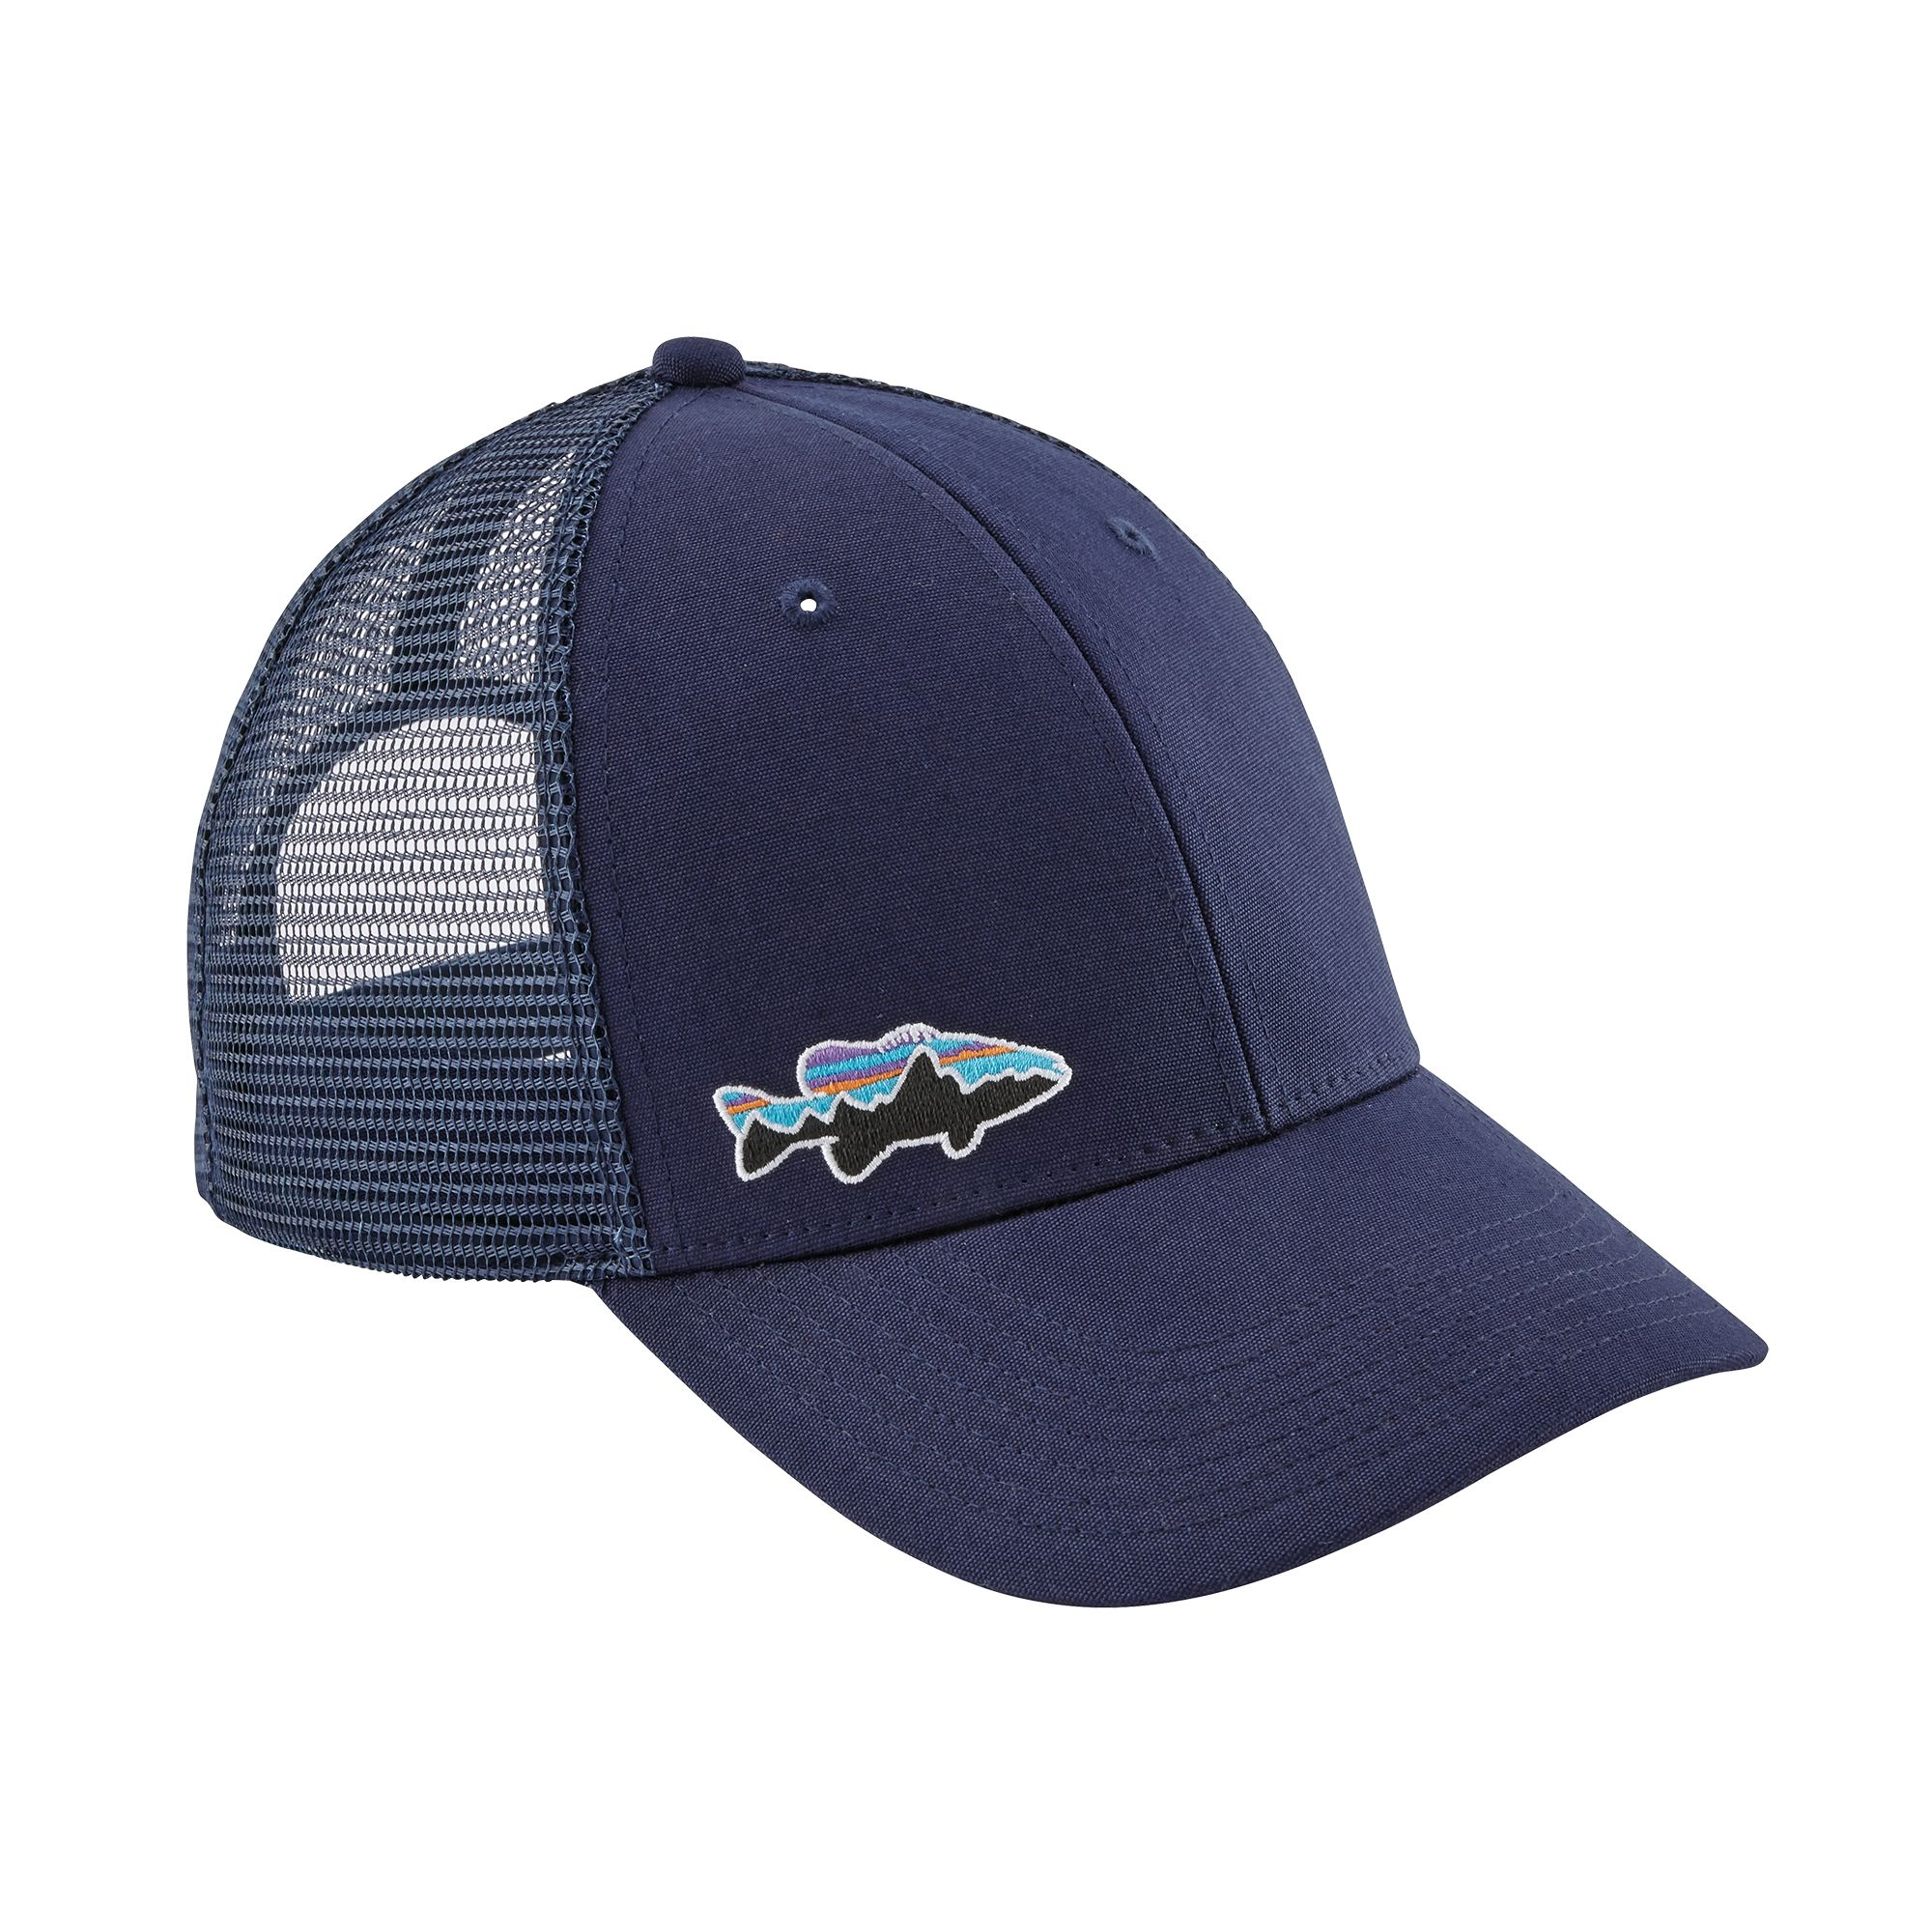 Patagonia-Small Fitz Roy Smallmouth LoPro Trucker Hat